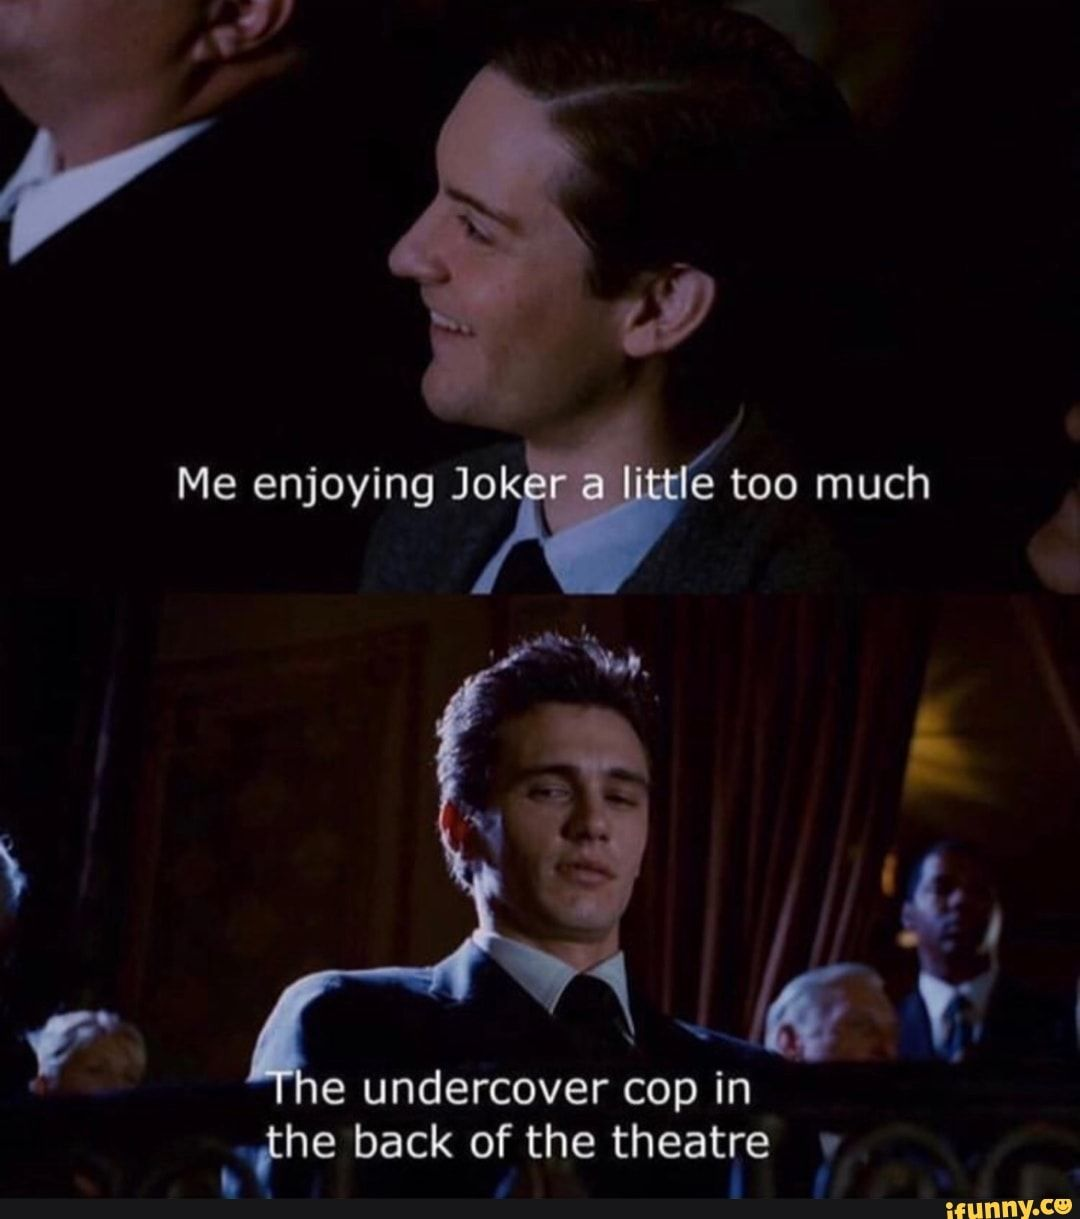 E Undercover Cop In The Back Of The Theatre V Ifunny Undercover Cop Funny Movie Memes Funny Batman Memes